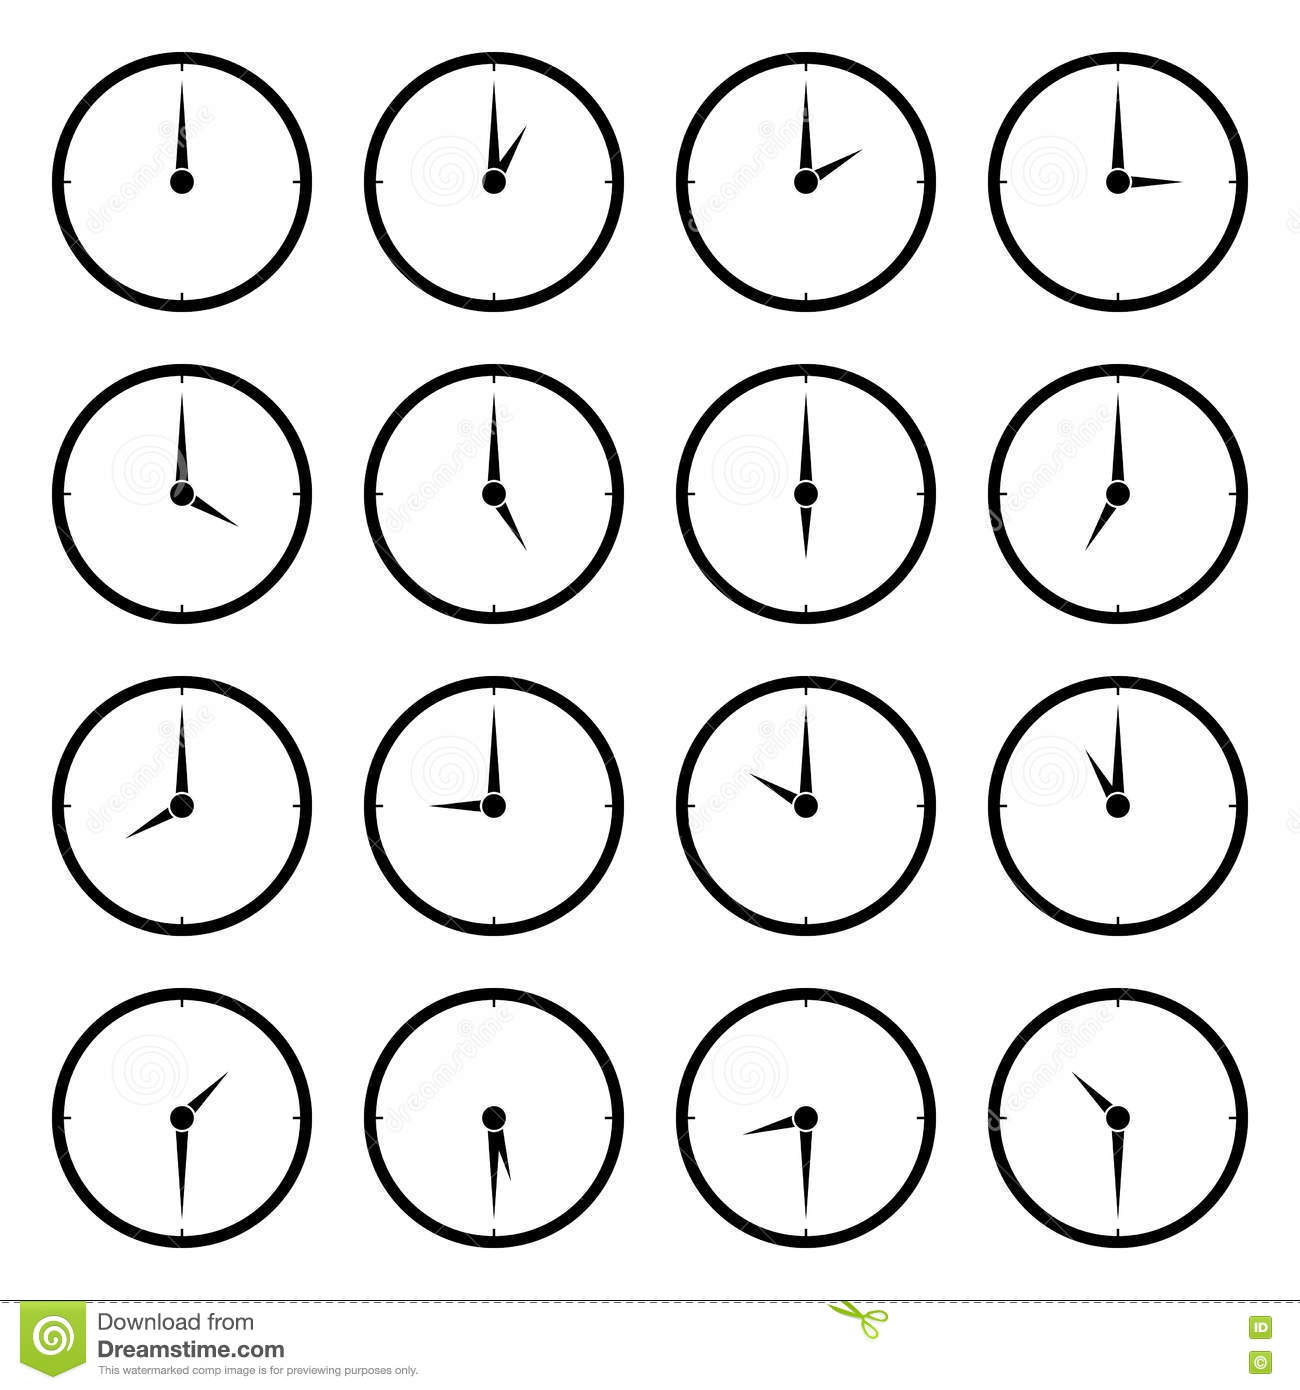 US Timezones Clock Android Apps On Google Play USA Time Zone Map - Us map travel times